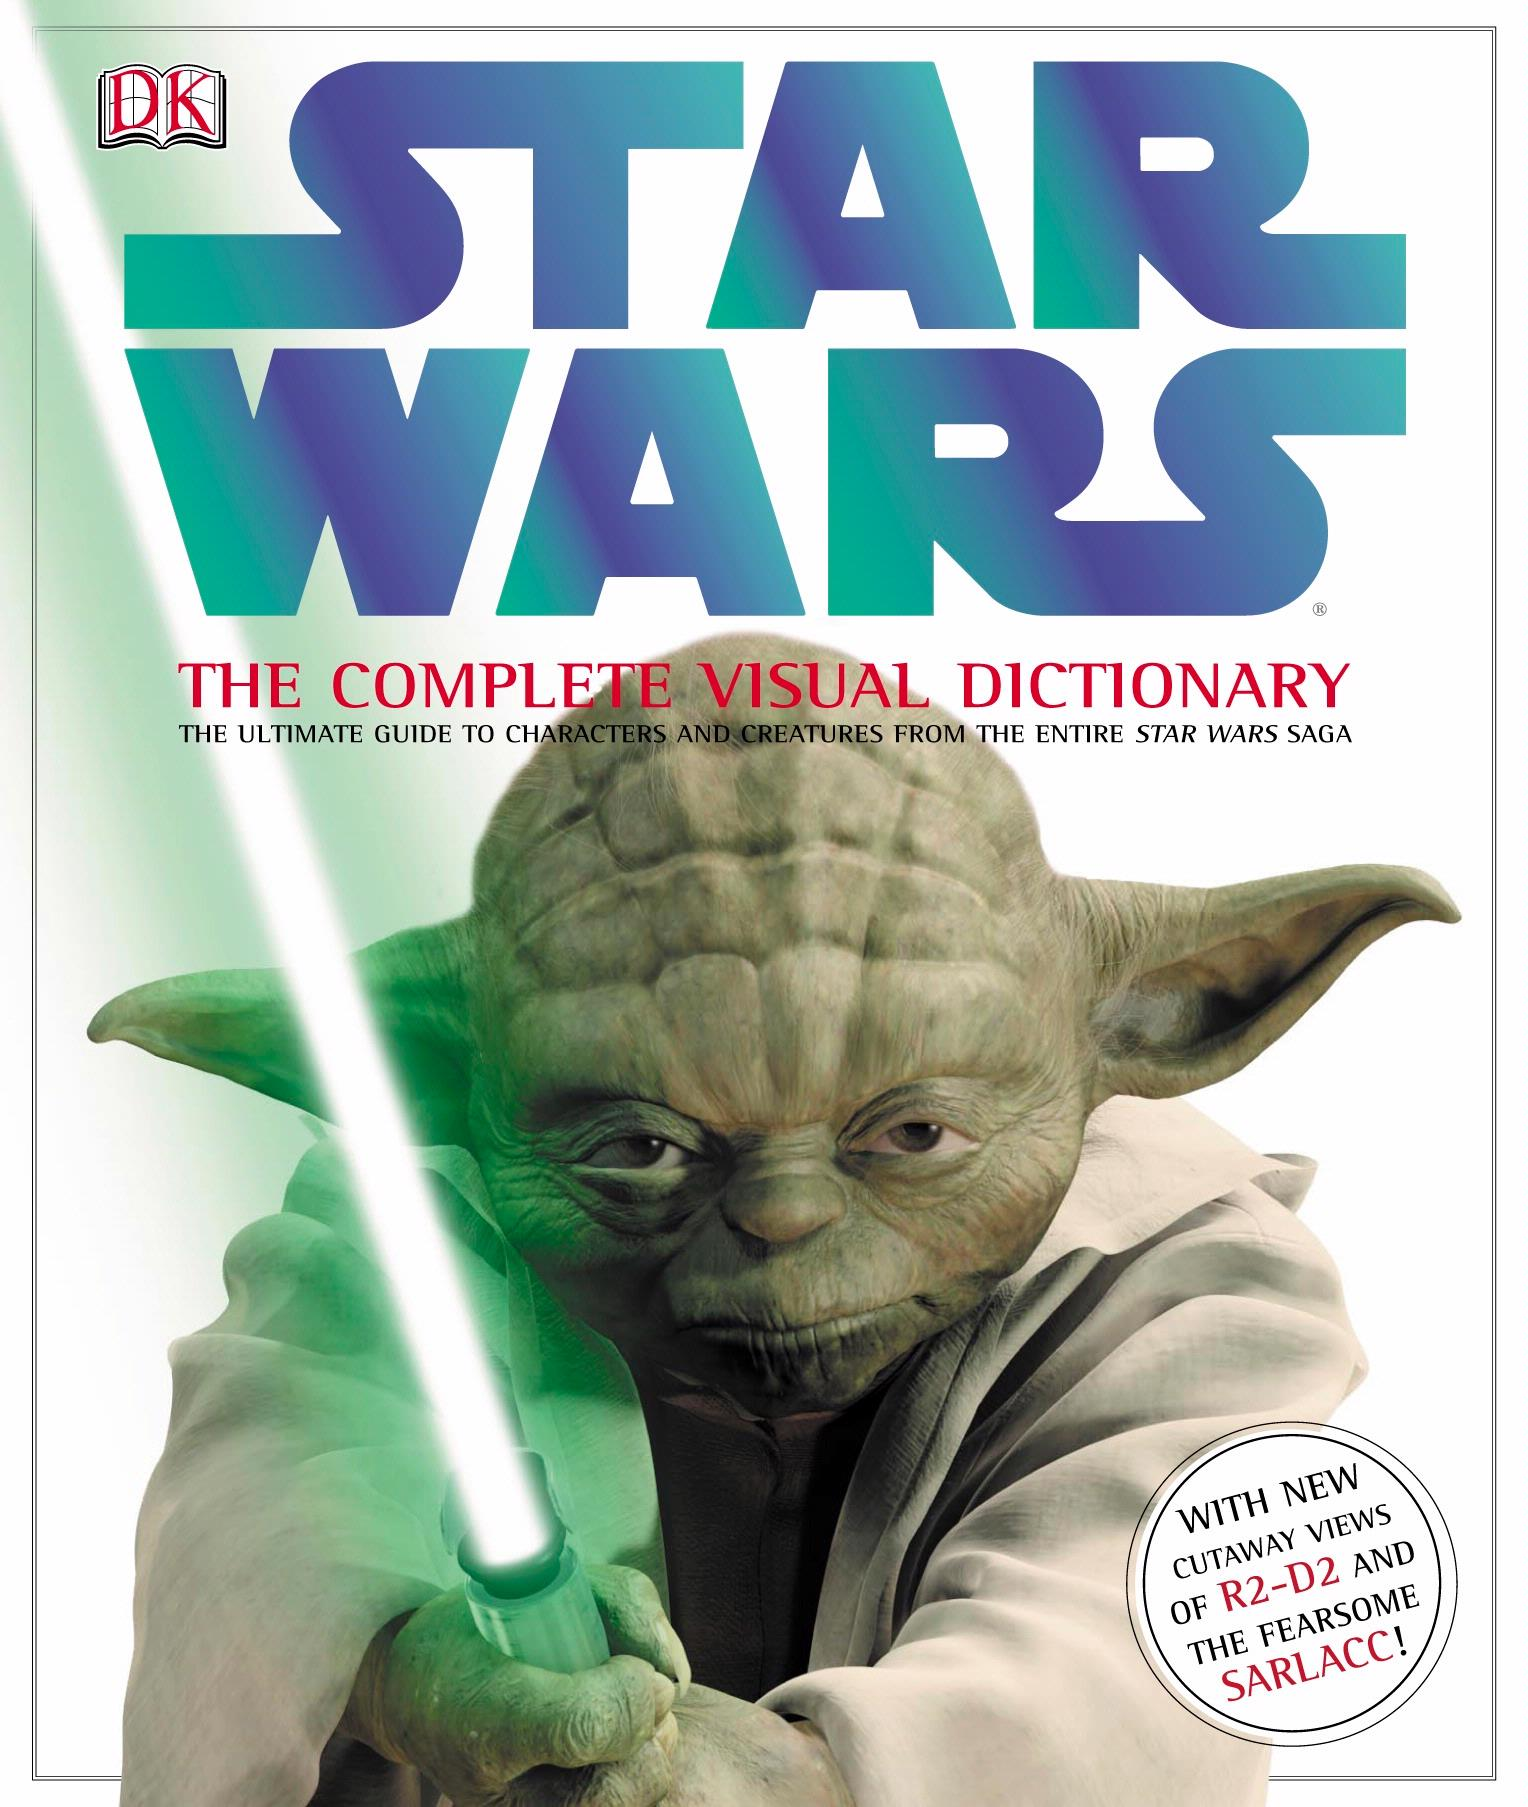 star wars the complete visual dictionary wookieepedia fandom star wars the complete visual dictionary wookieepedia fandom powered by wikia